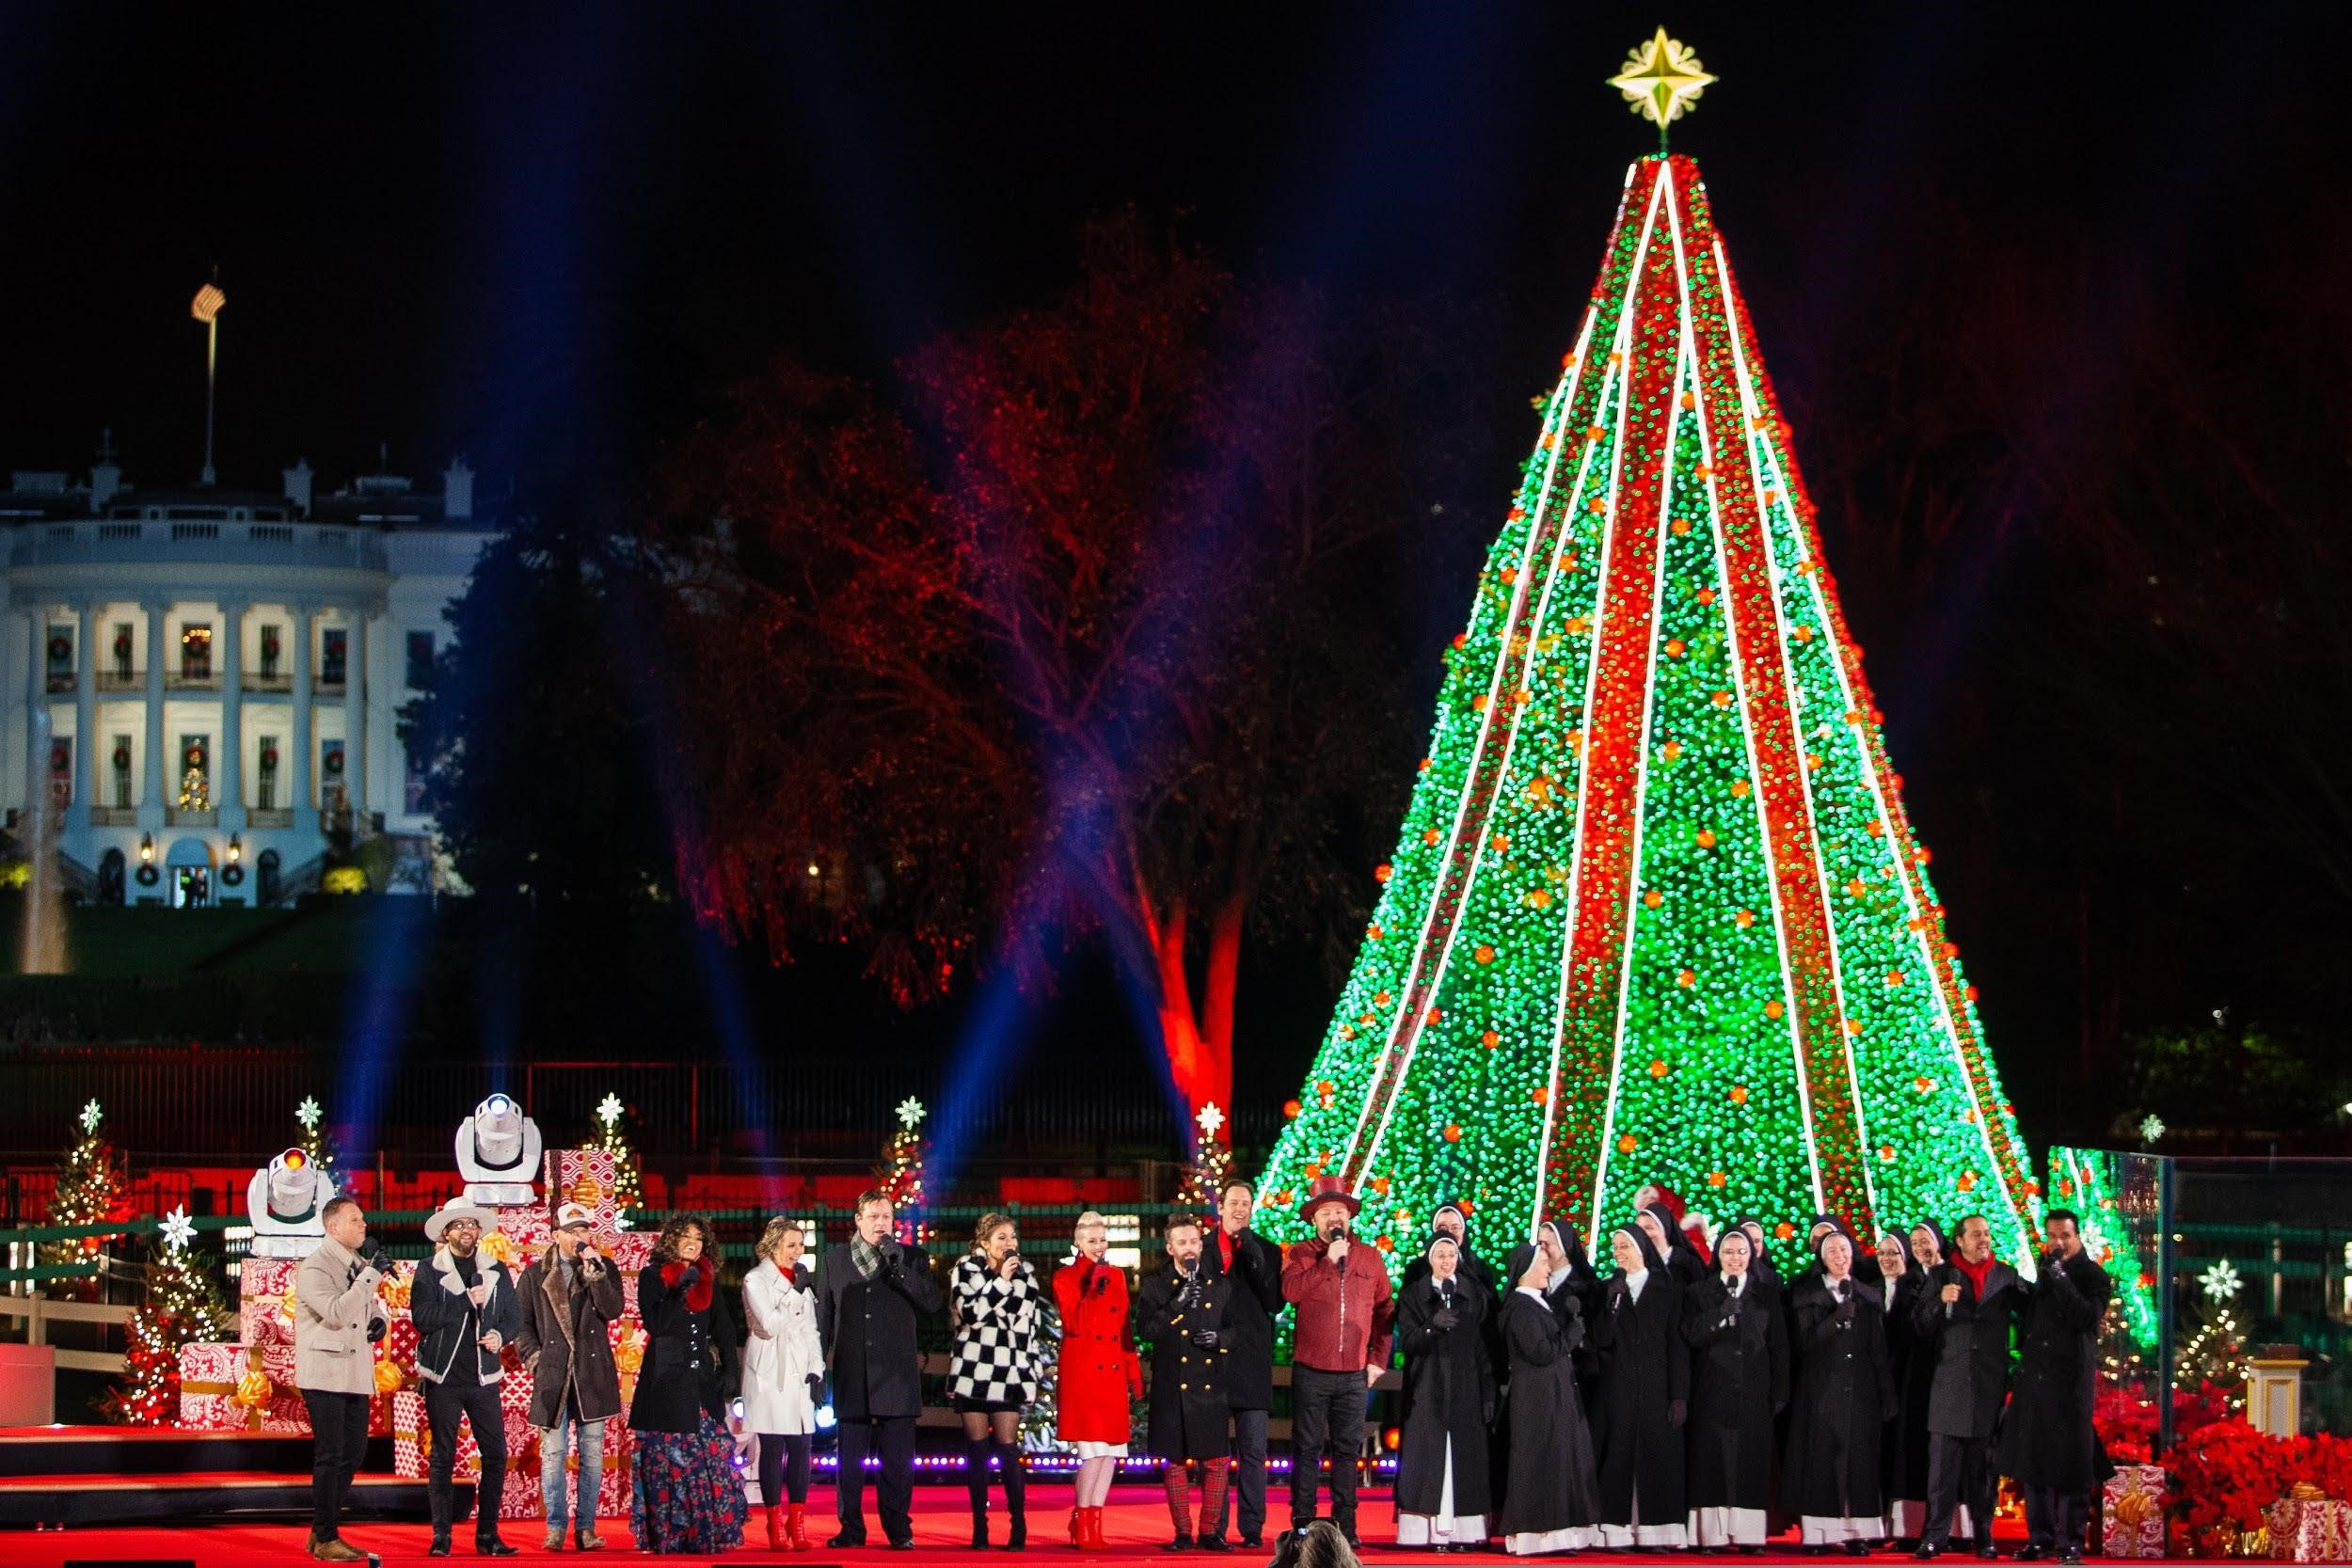 National Christmas Tree 2019.Save The Date For The 2019 National Christmas Tree Lighting